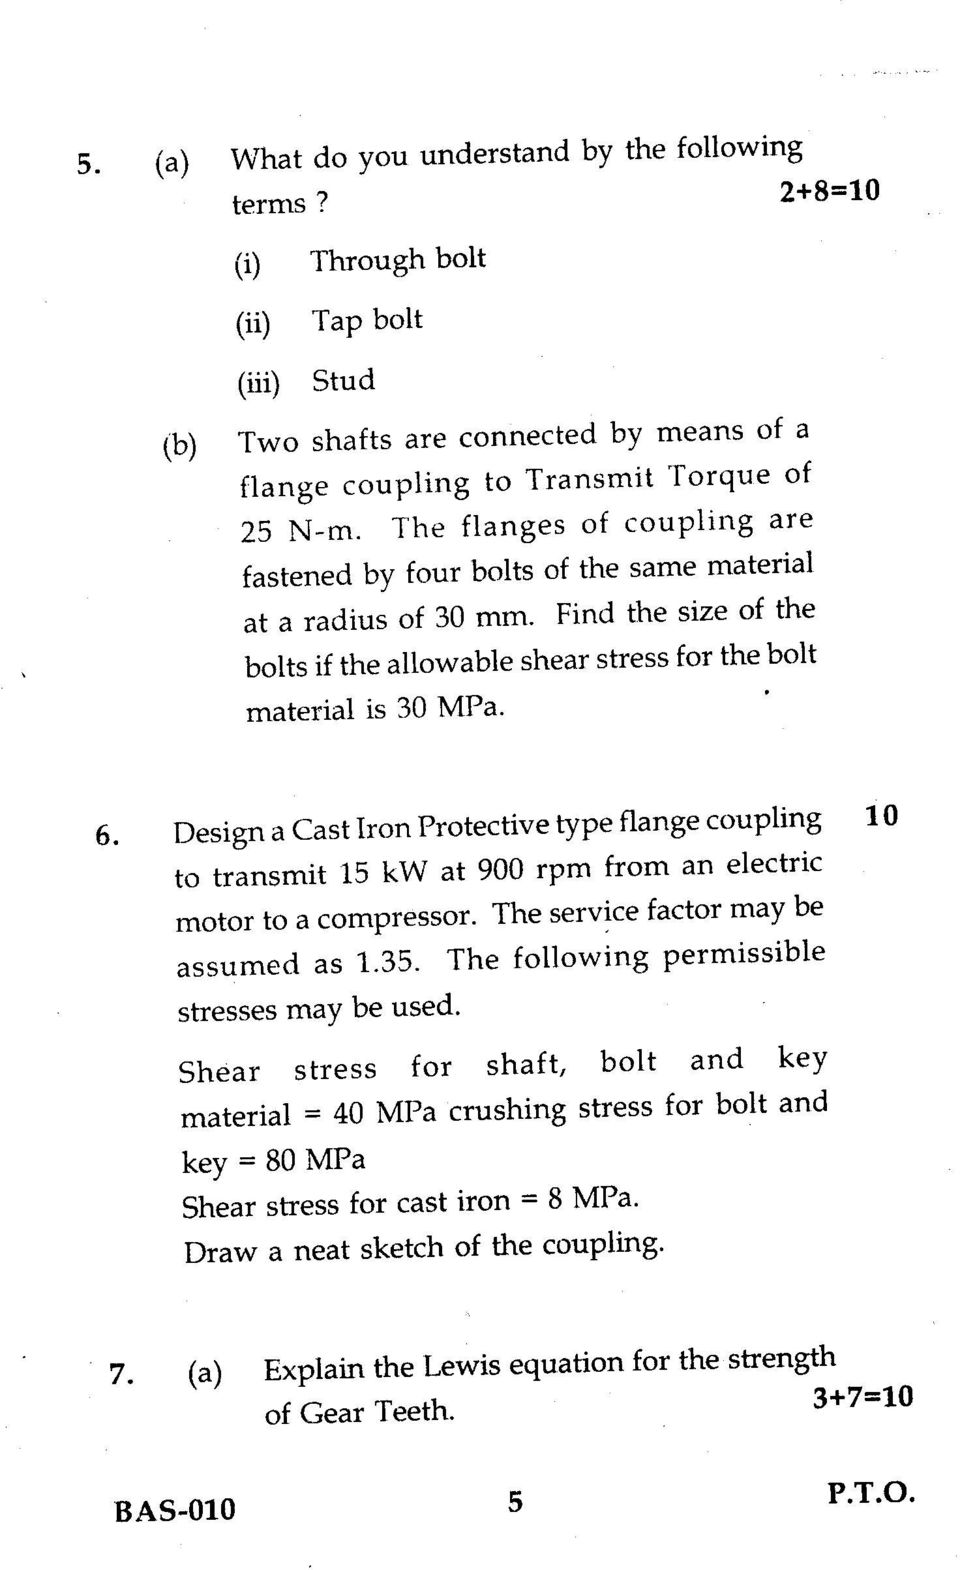 Design a Cast Iron Protective type flange coupling 10 to transmit 15 kw at 900 rpm from an electric motor to a compressor. The service factor may be assumed as 1.35.